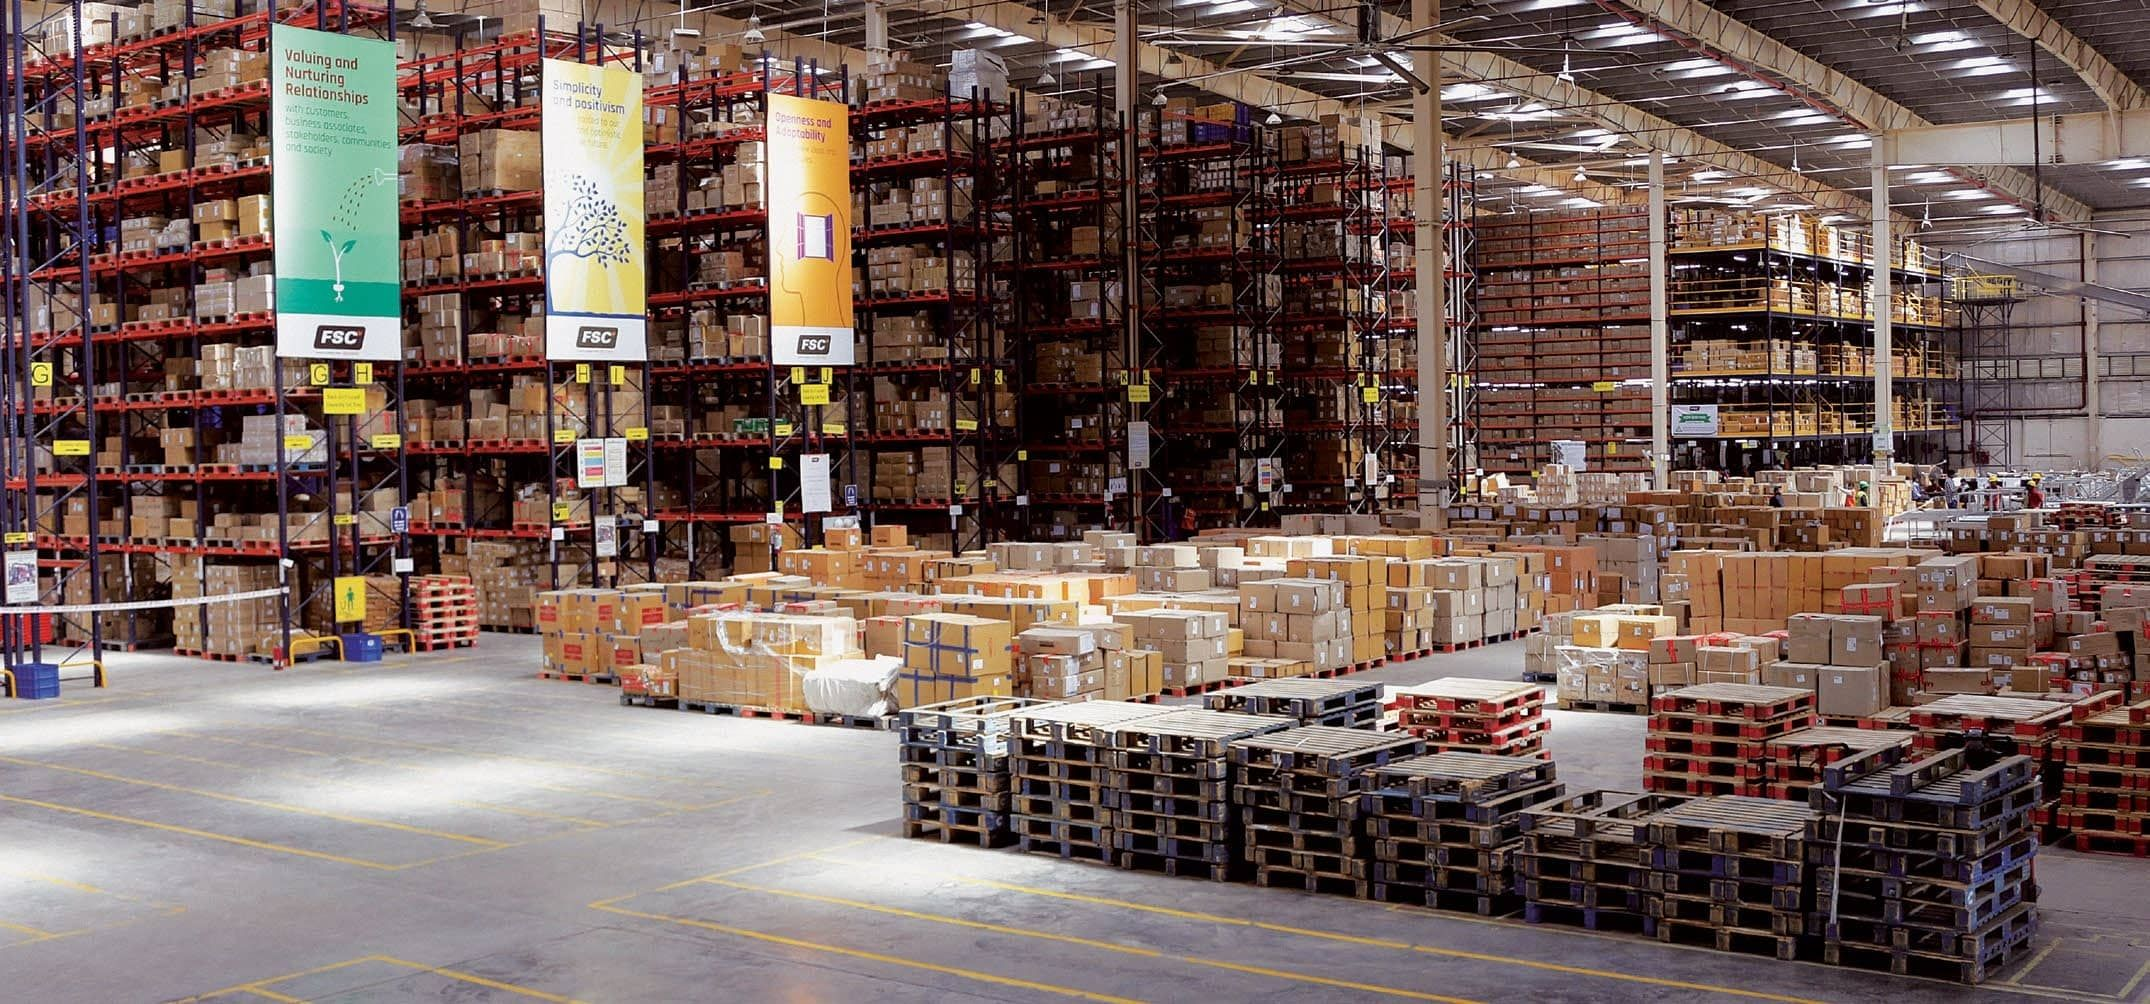 Robots And Automated Systems Are Transforming Warehousing